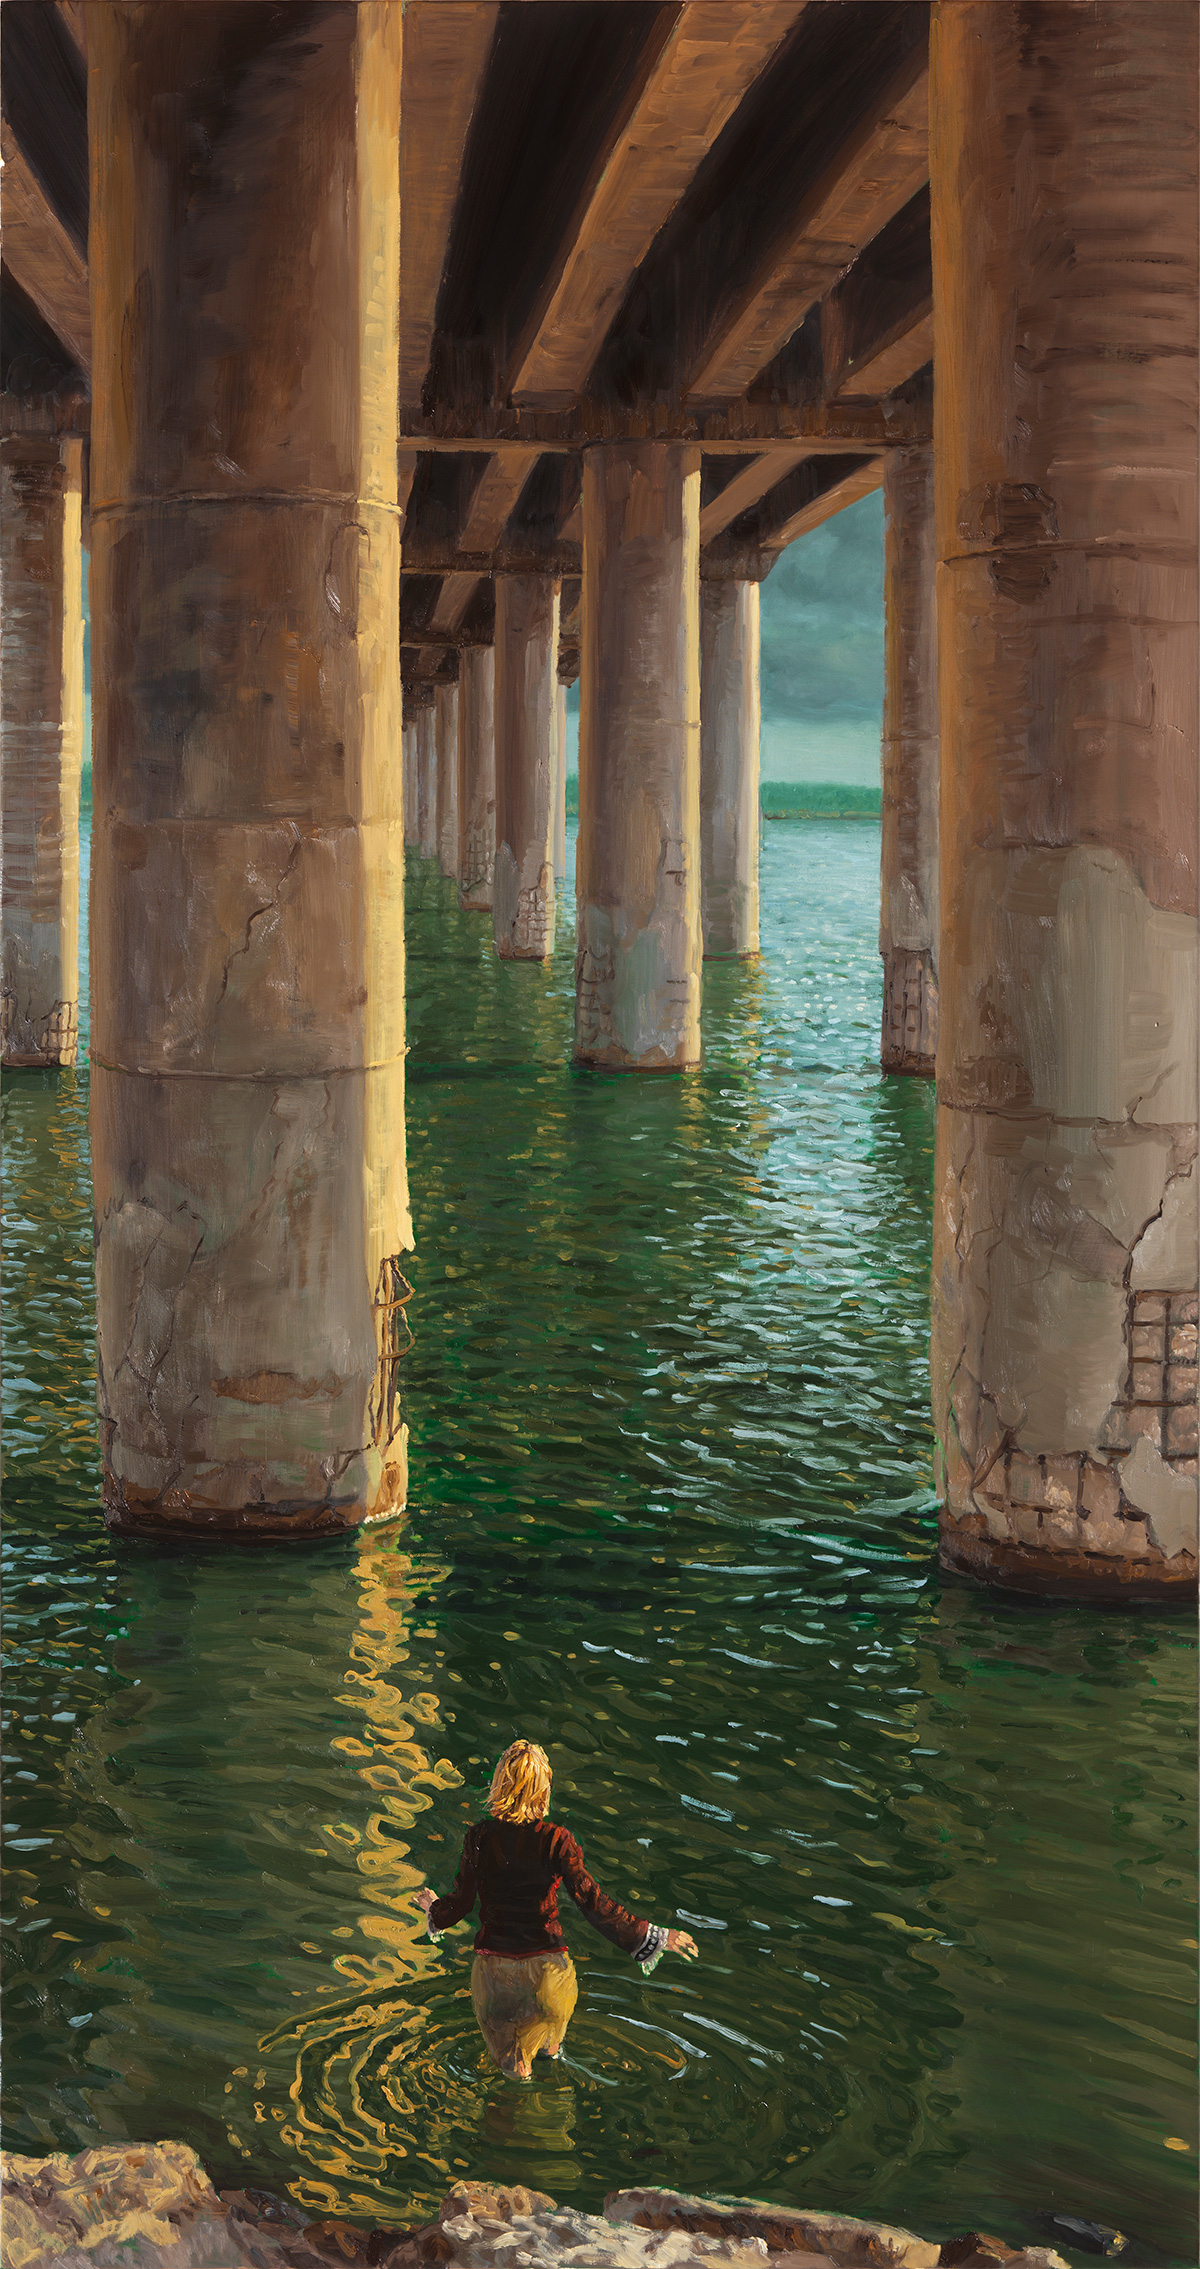 The Passage, 2011, oil on linen, 170 X 90 cm